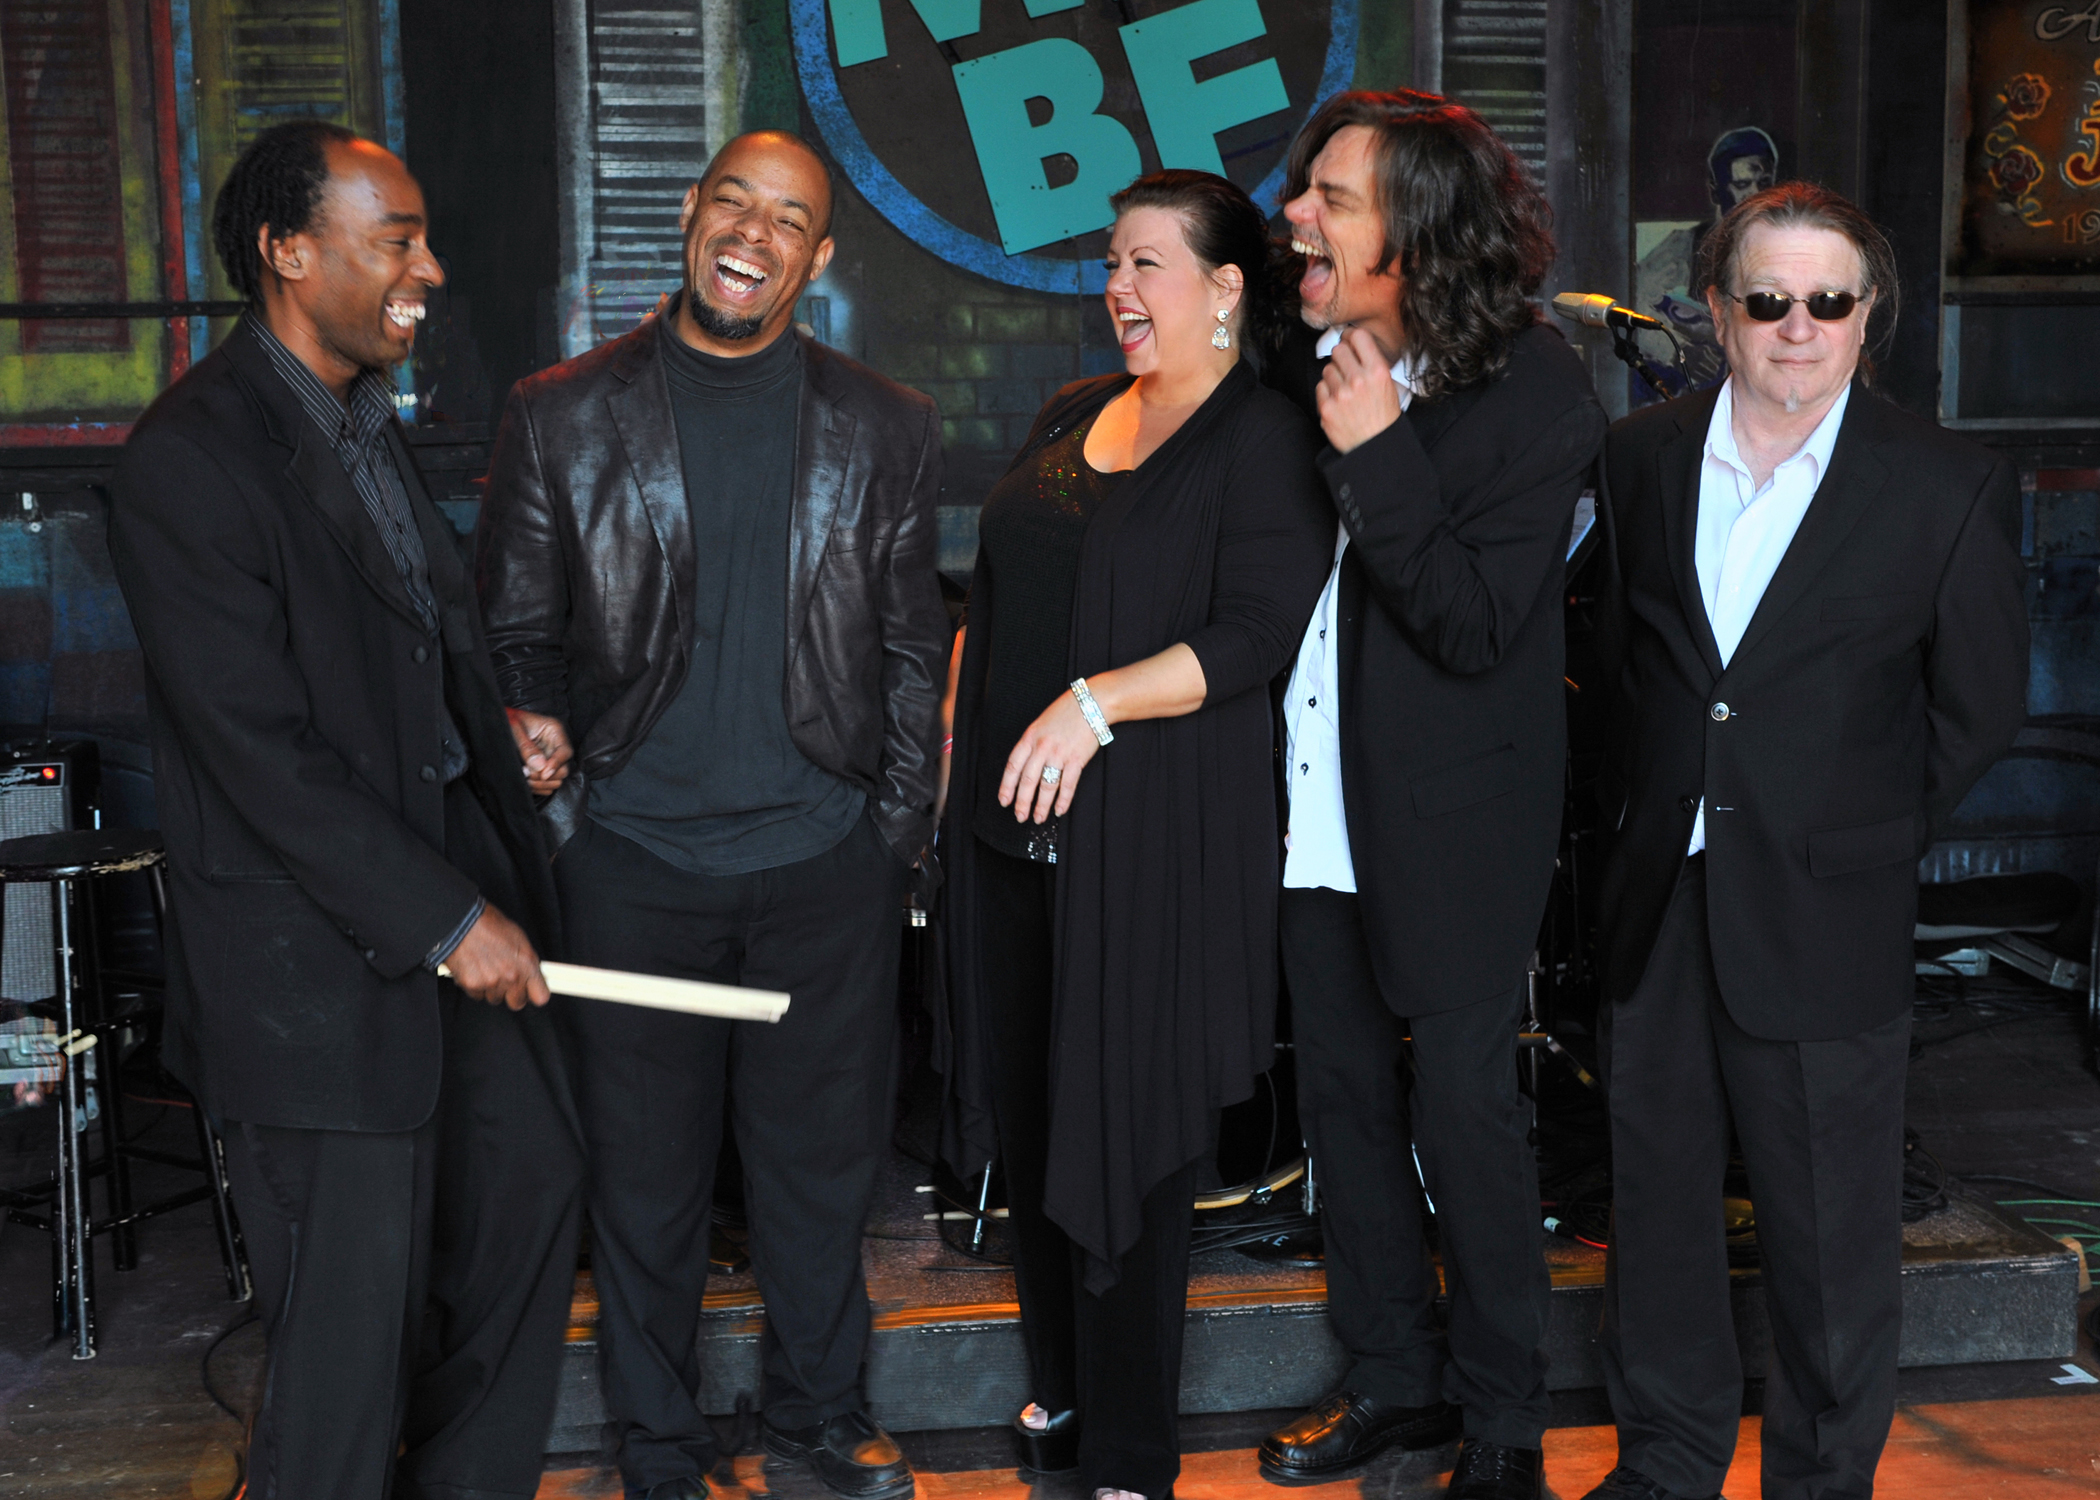 """Paula Harris and Her Band """"The Beasts of Blues"""""""